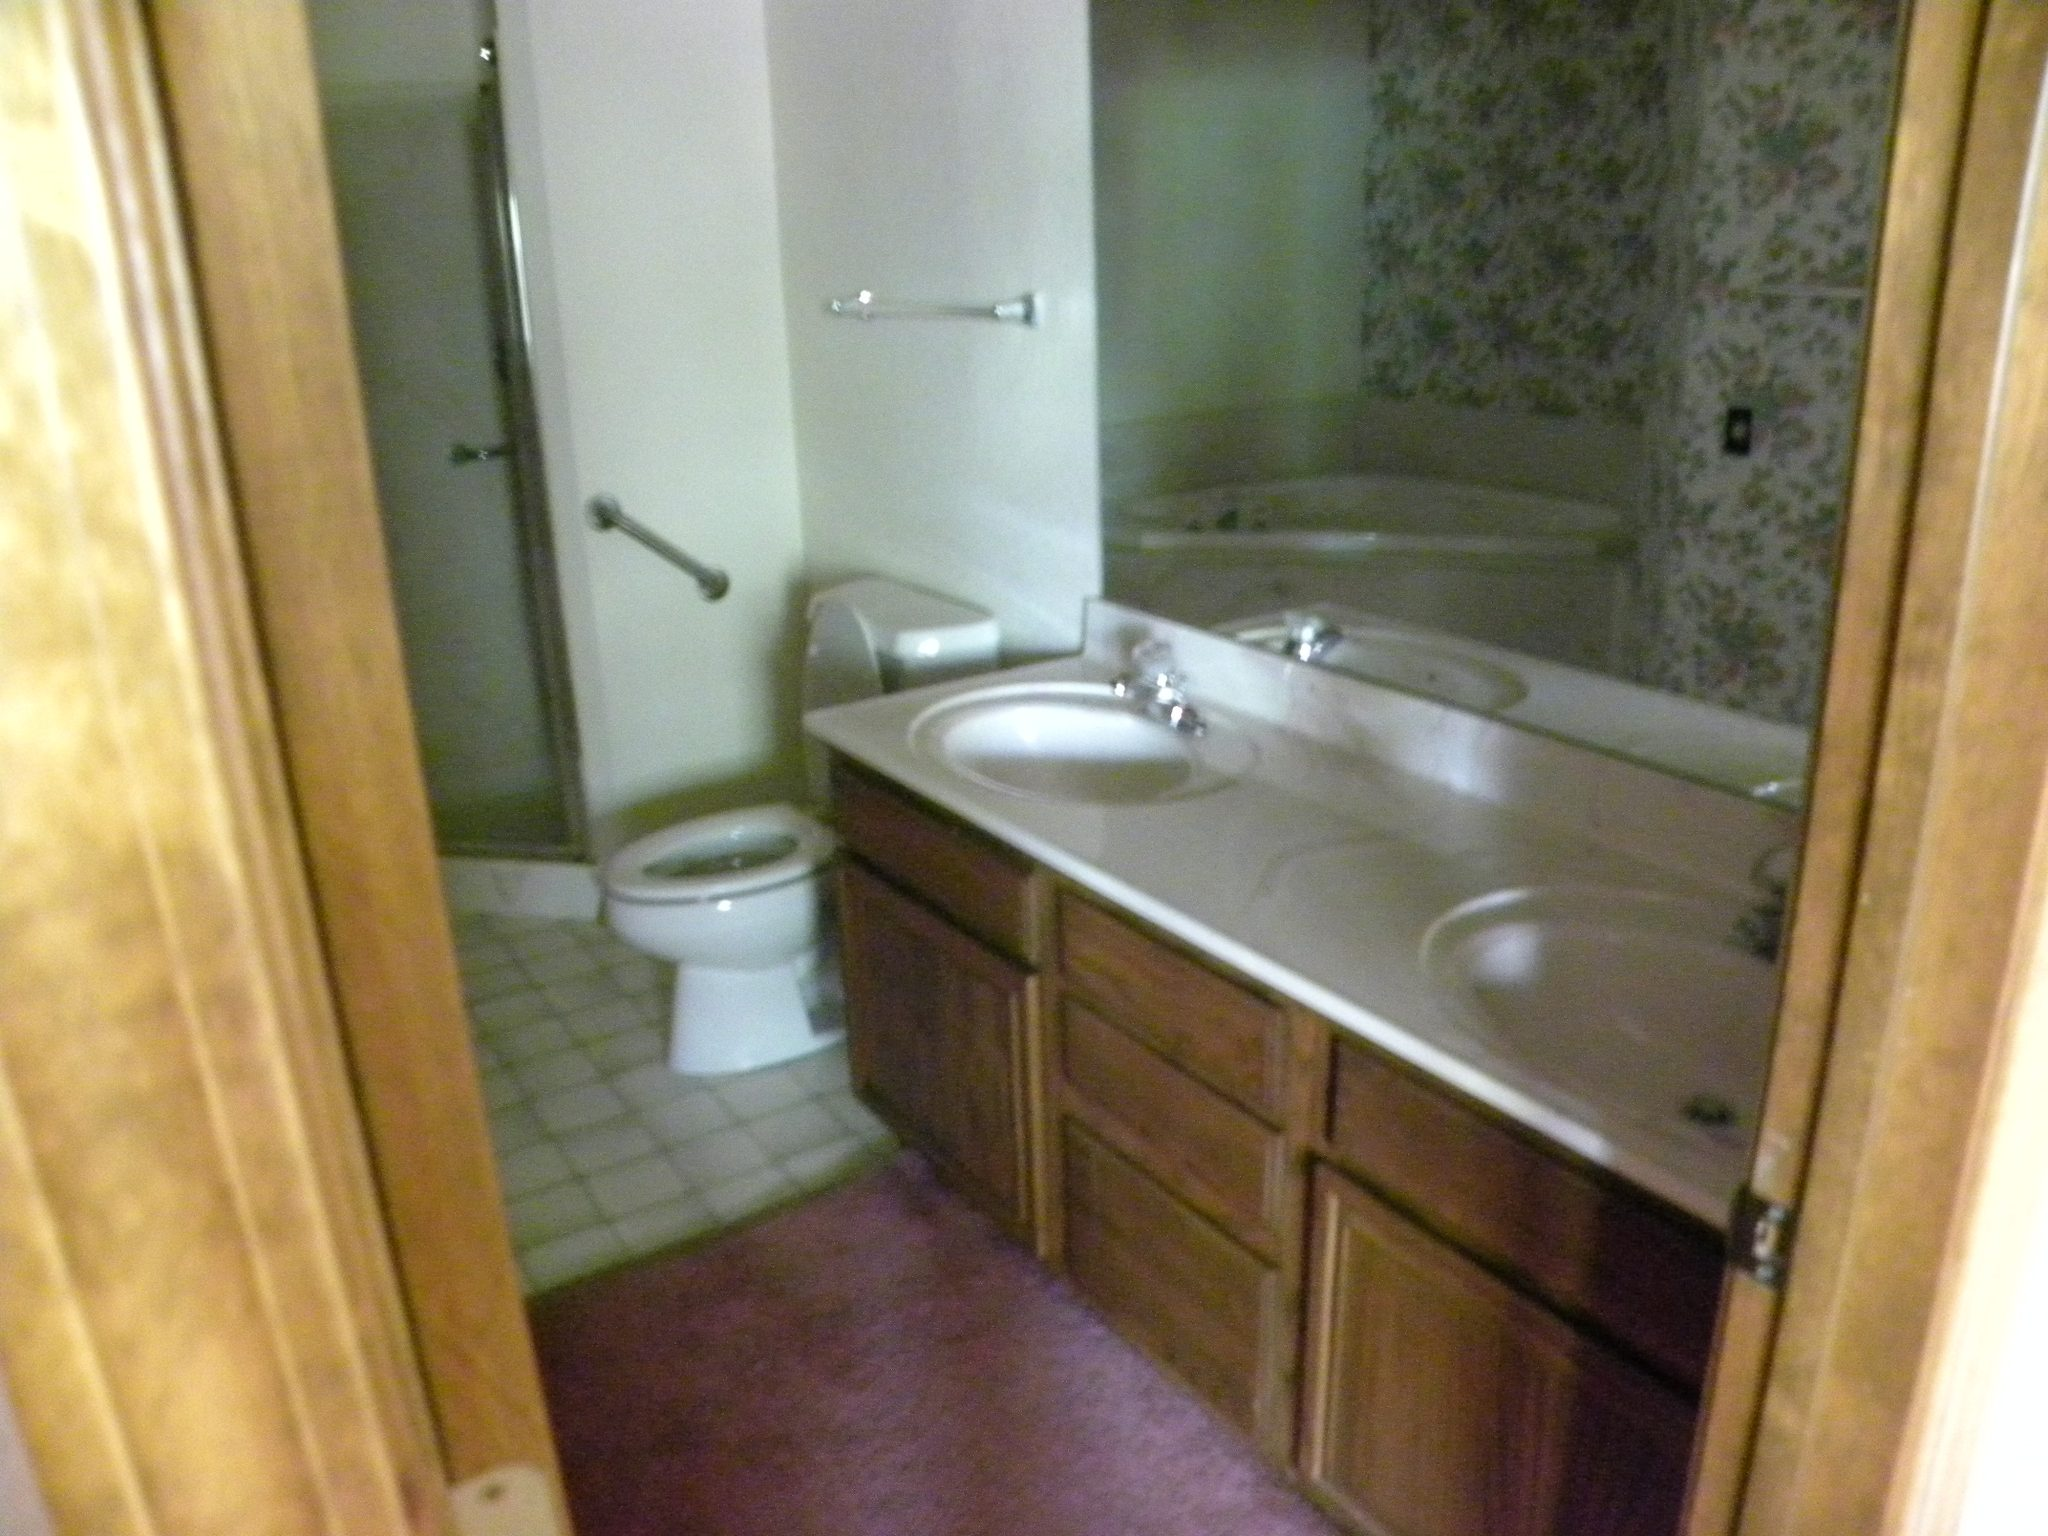 Interior shot of a residential bathroom ready to be remodeled